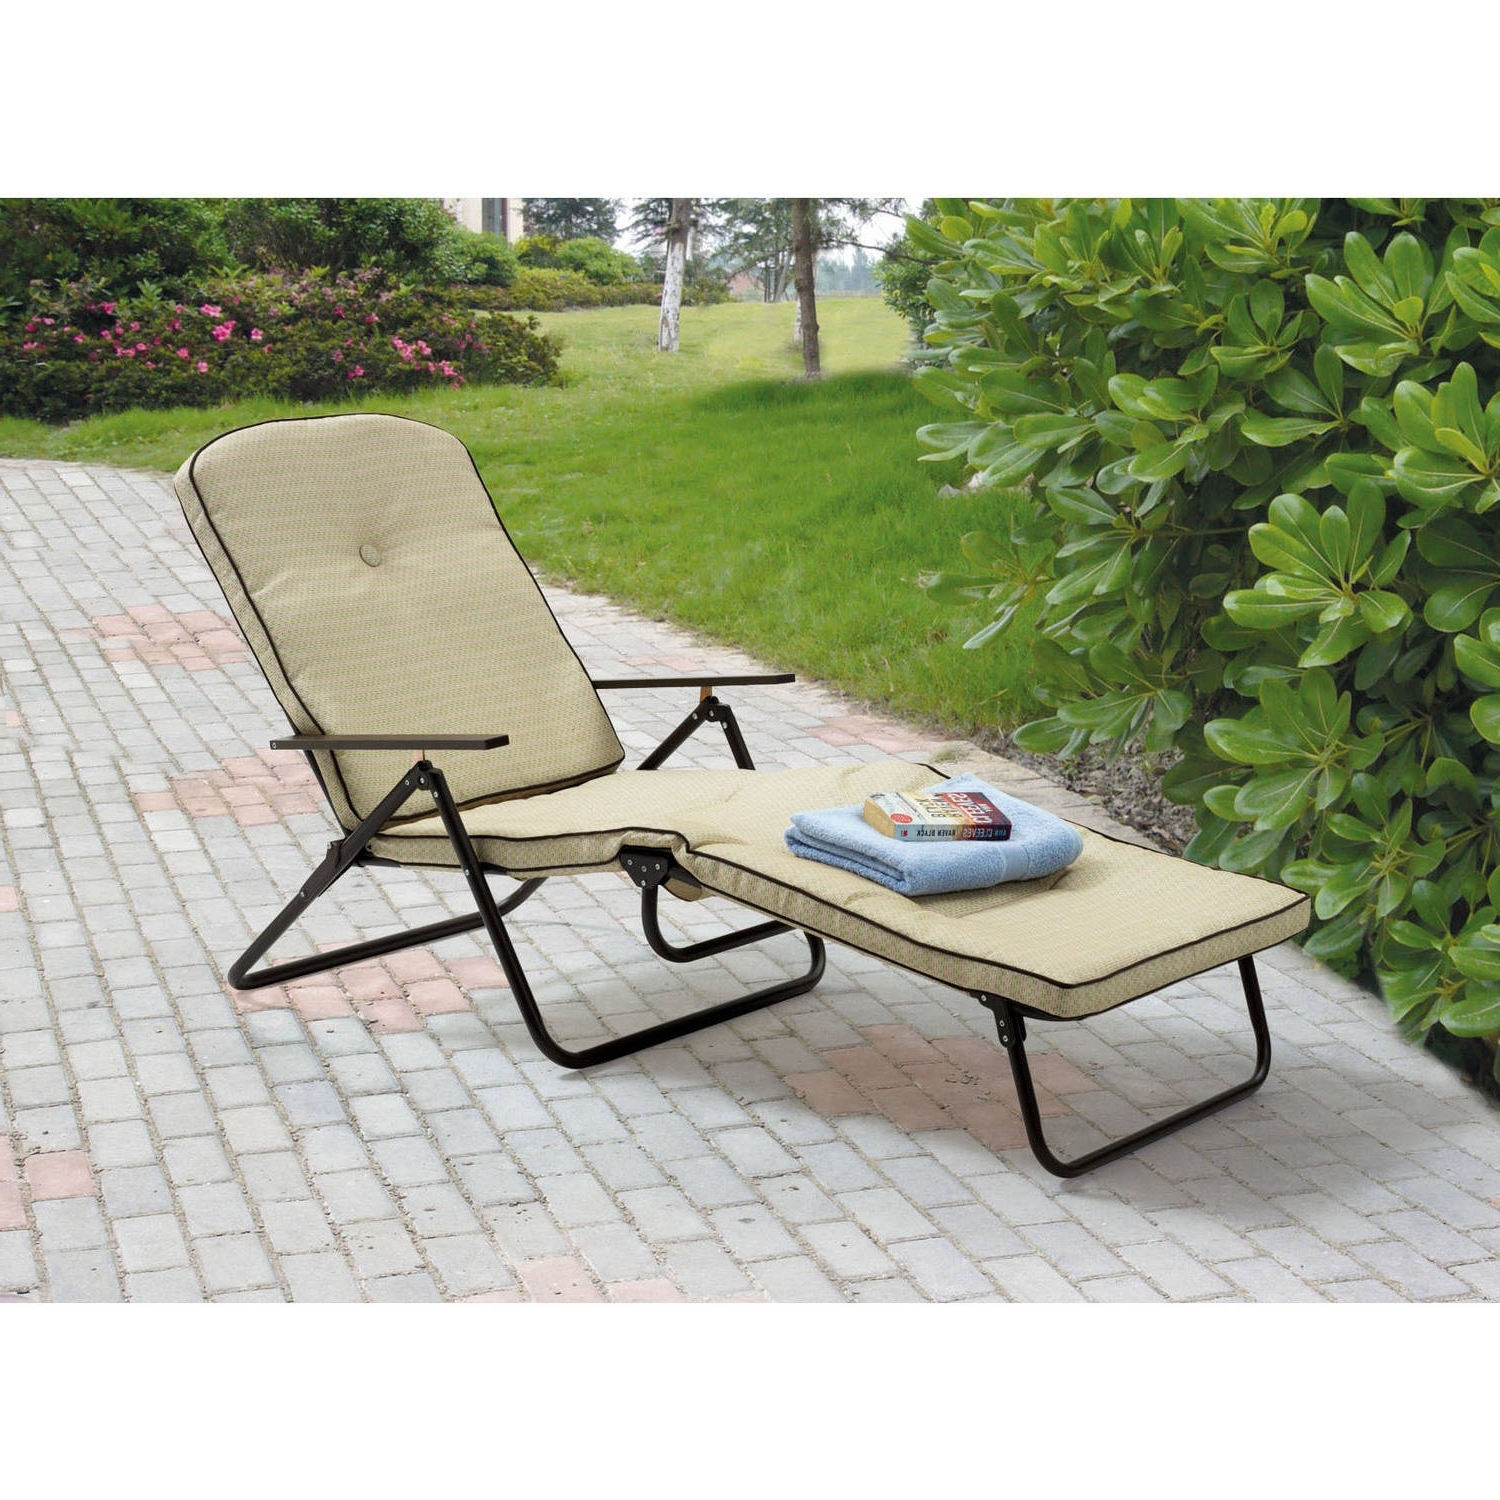 Outdoor Chaise Lounge Chairs At Walmart Throughout Favorite Mainstays Sand Dune Outdoor Padded Folding Chaise Lounge, Tan (View 4 of 15)